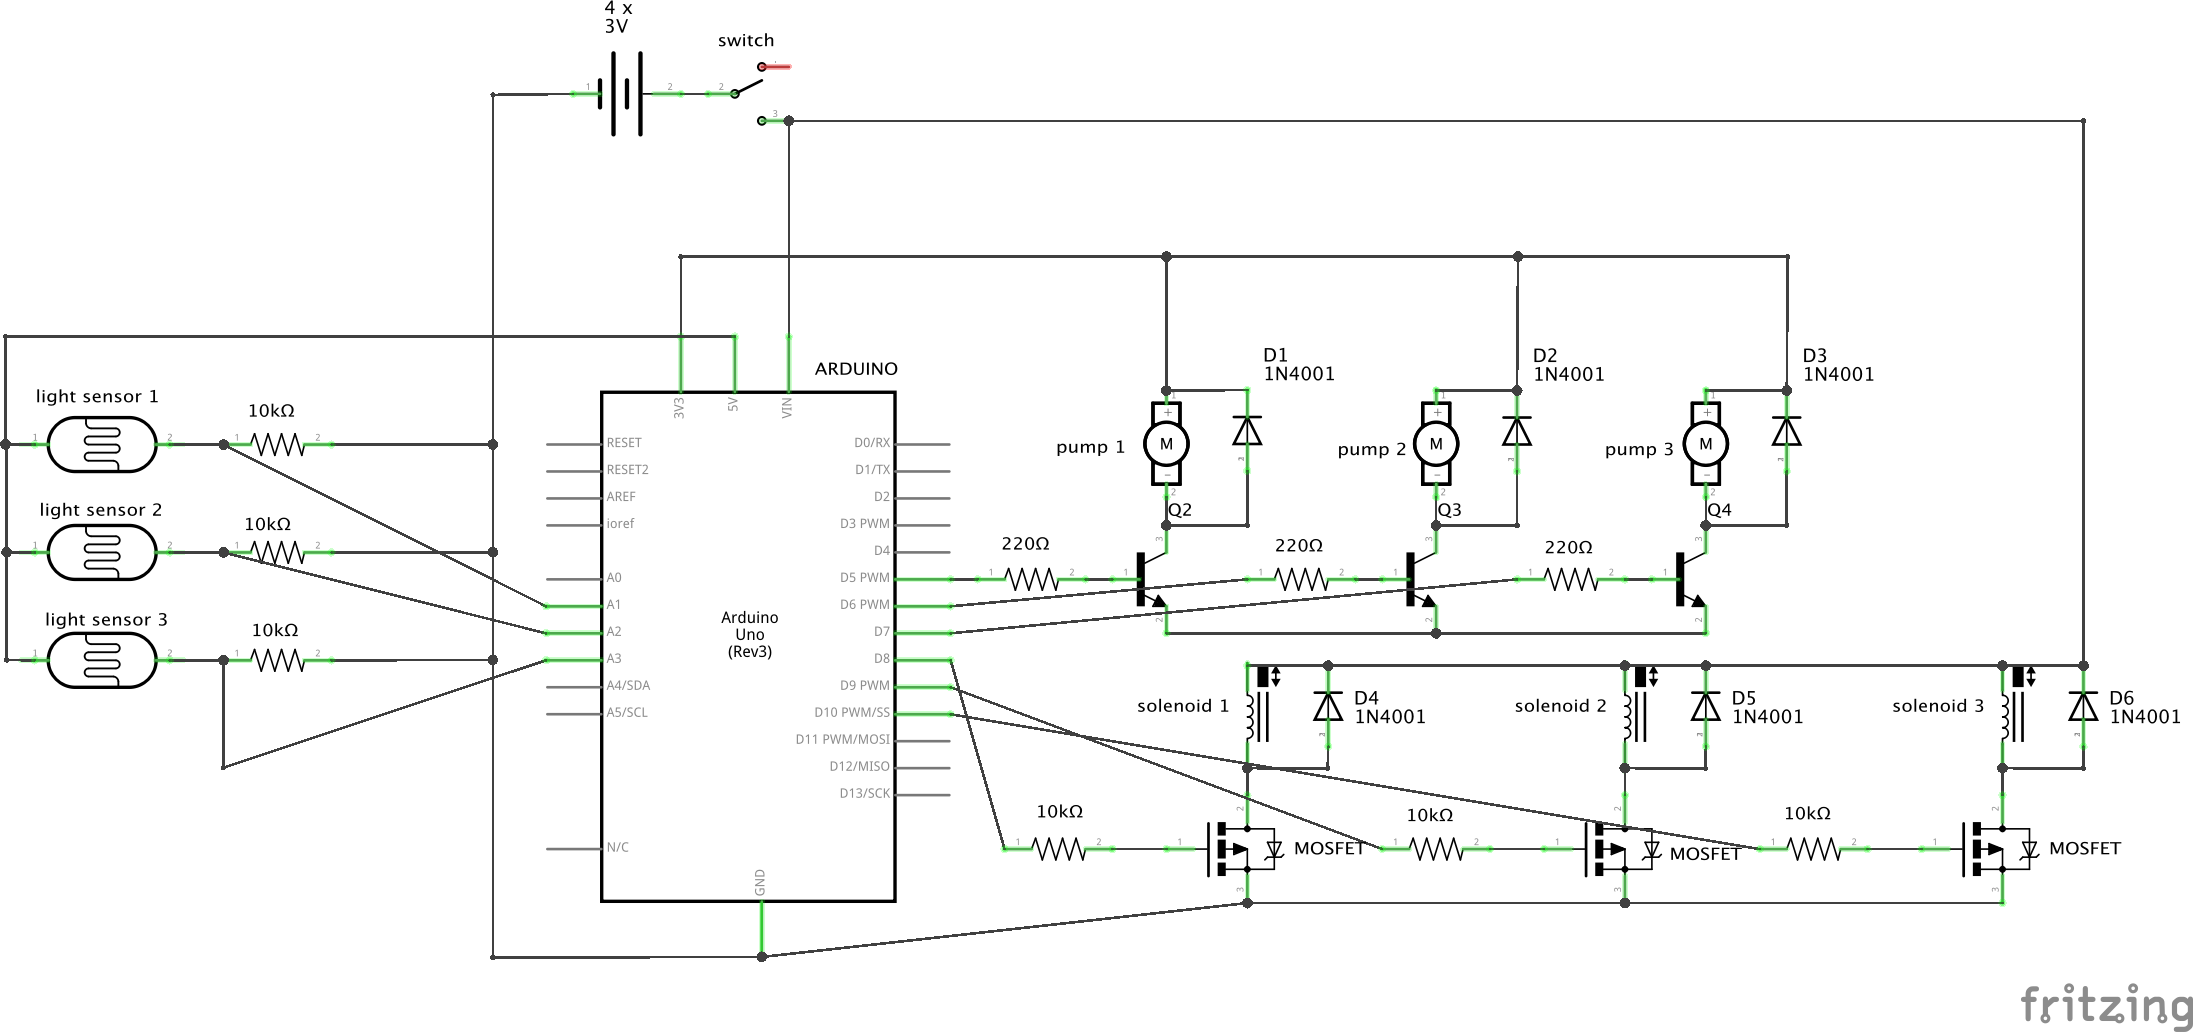 soft_robot_schematic